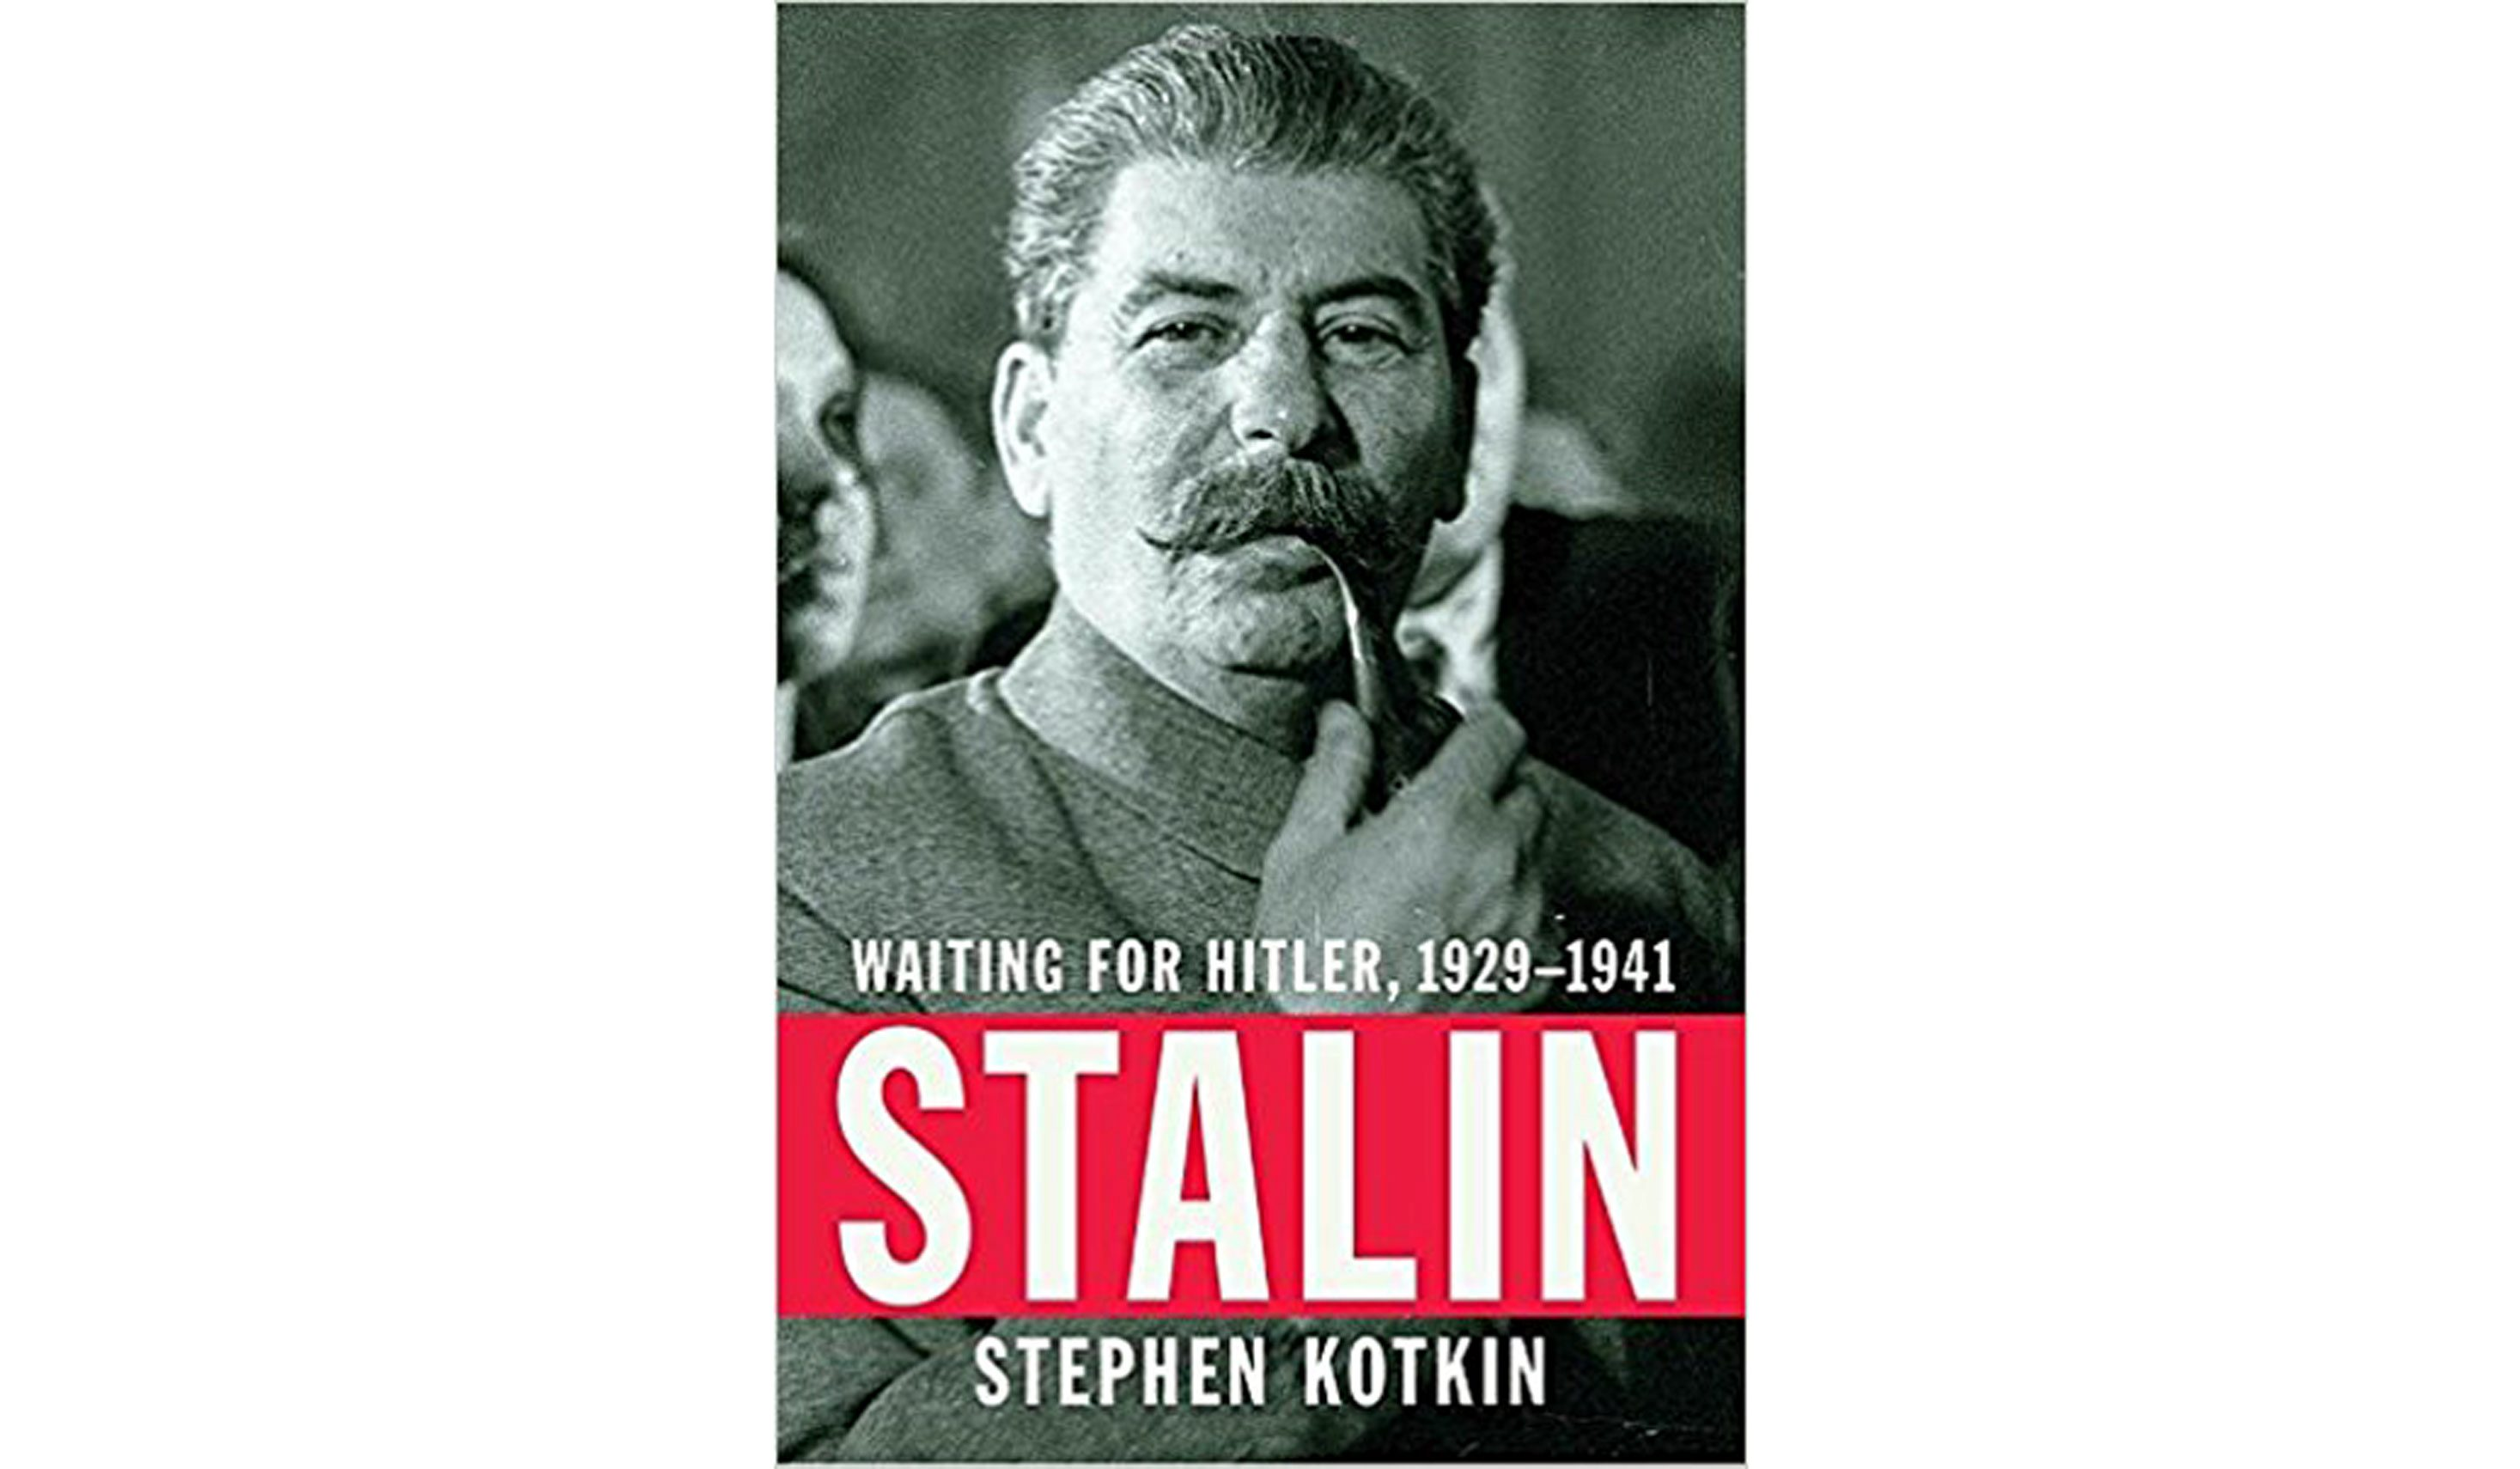 What under Stalin did with disabilities 50